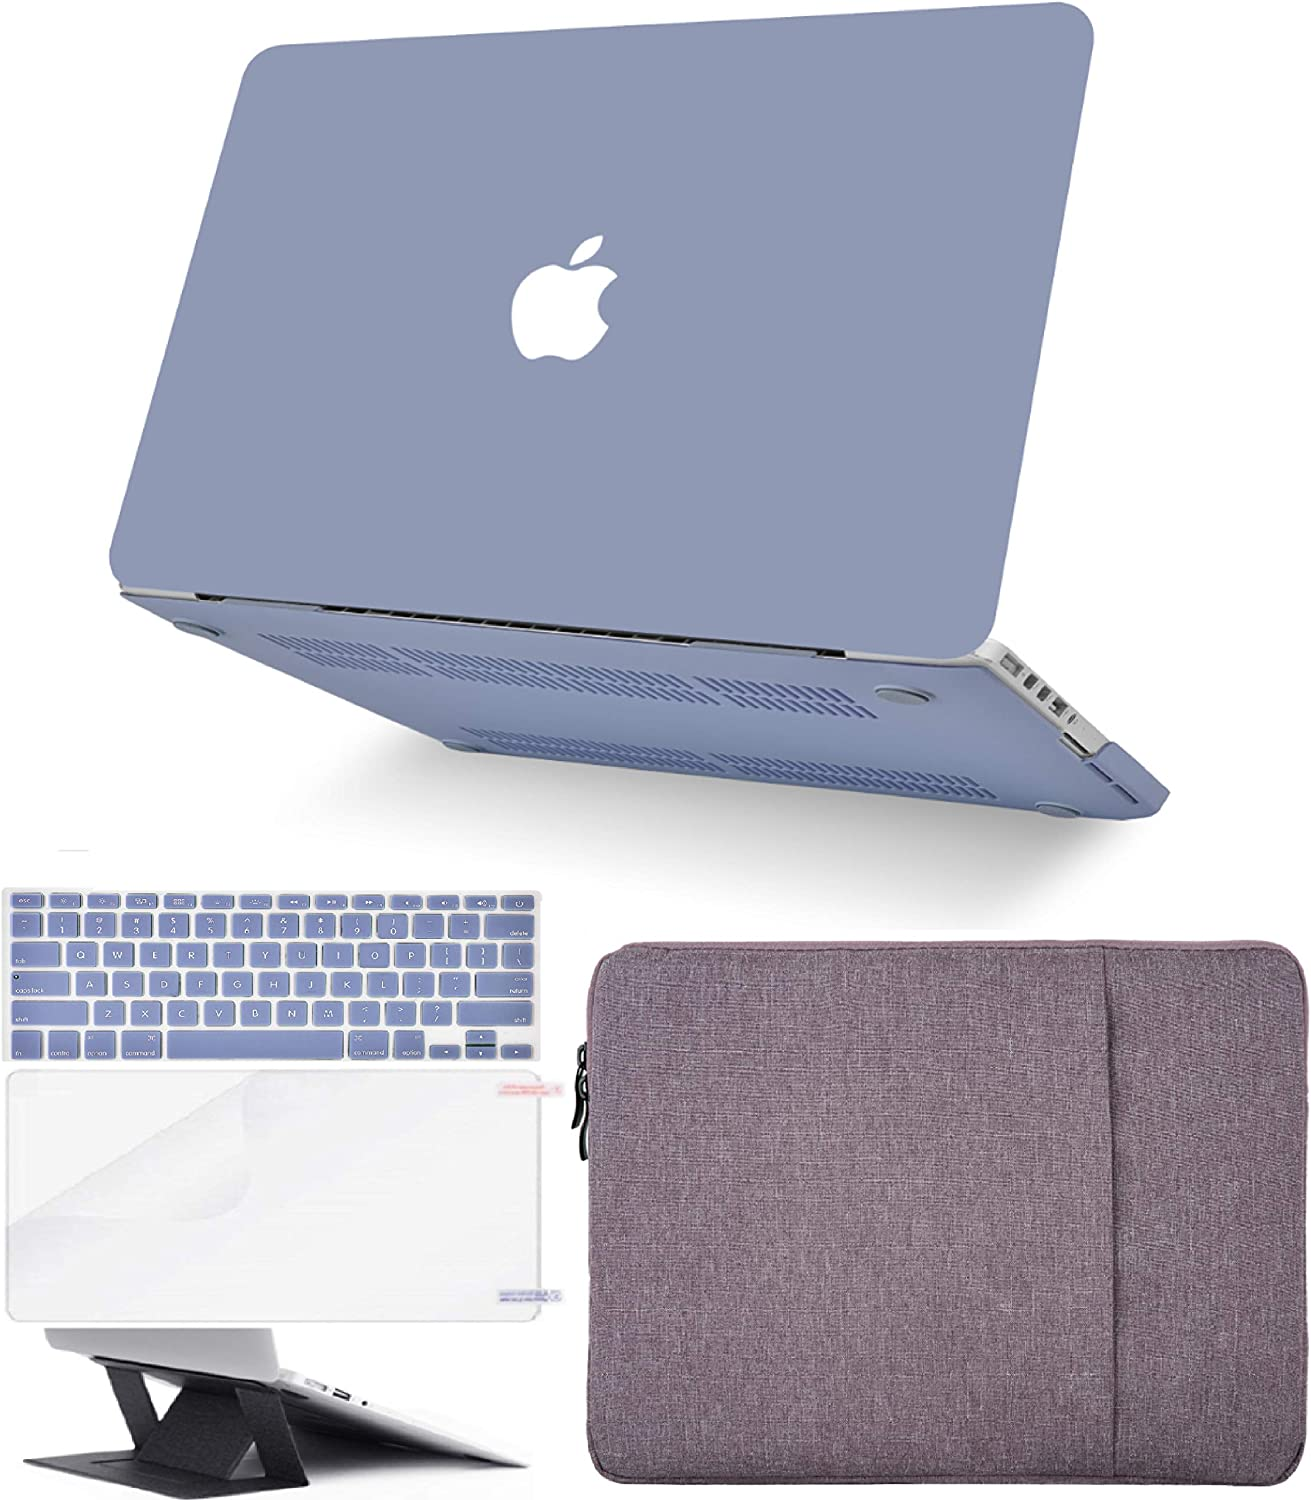 "KECC Laptop Case for MacBook Air 13"" Retina (2020, Touch ID) w/Keyboard Cover + Sleeve + Screen Protector + Laptop Stand (5 in 1 Bundle) Plastic Hard Shell Case A2179 (Lavender Grey)"